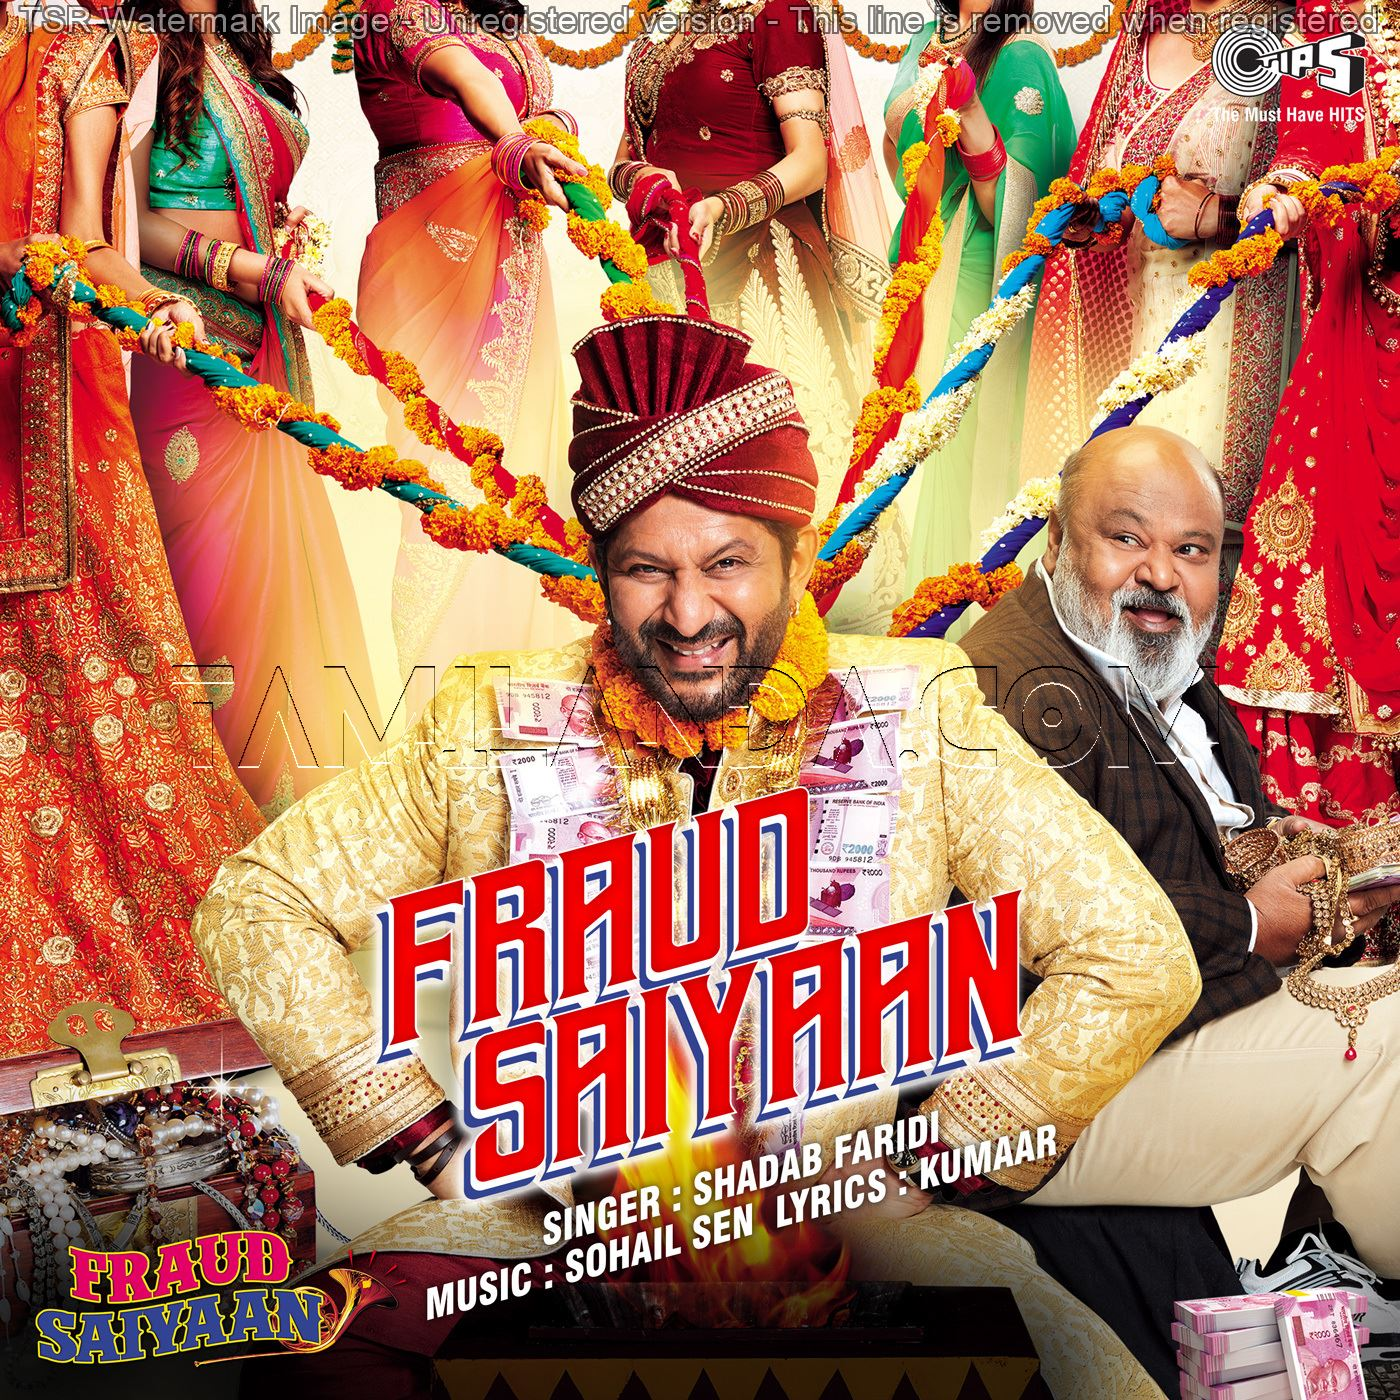 Fraud Saiyaan (From Fraud Saiyaan) – Single FLAC Song (2019)